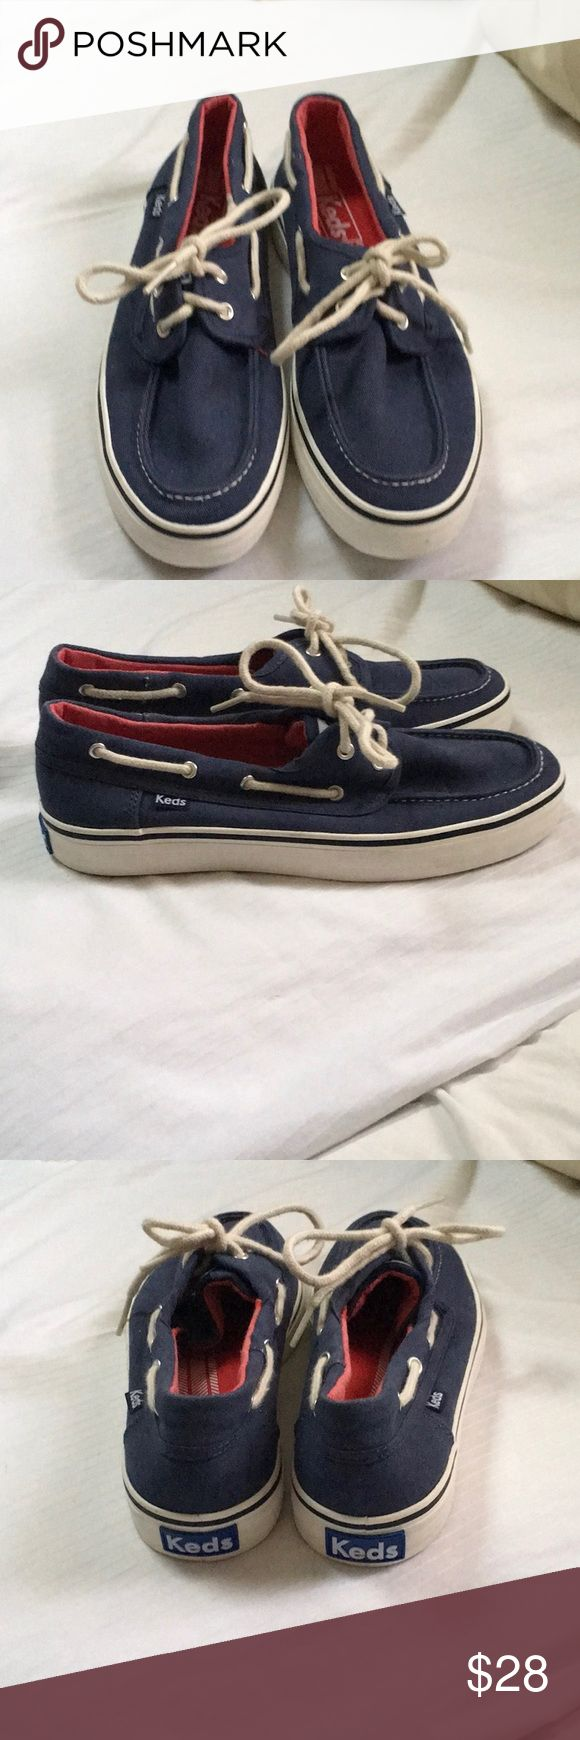 NEW KEDS BLUE BOAT SHOES SIZE 6.5 NEW KEDS BLUE BOAT SHOES 6.5 Keds Shoes Flats & Loafers